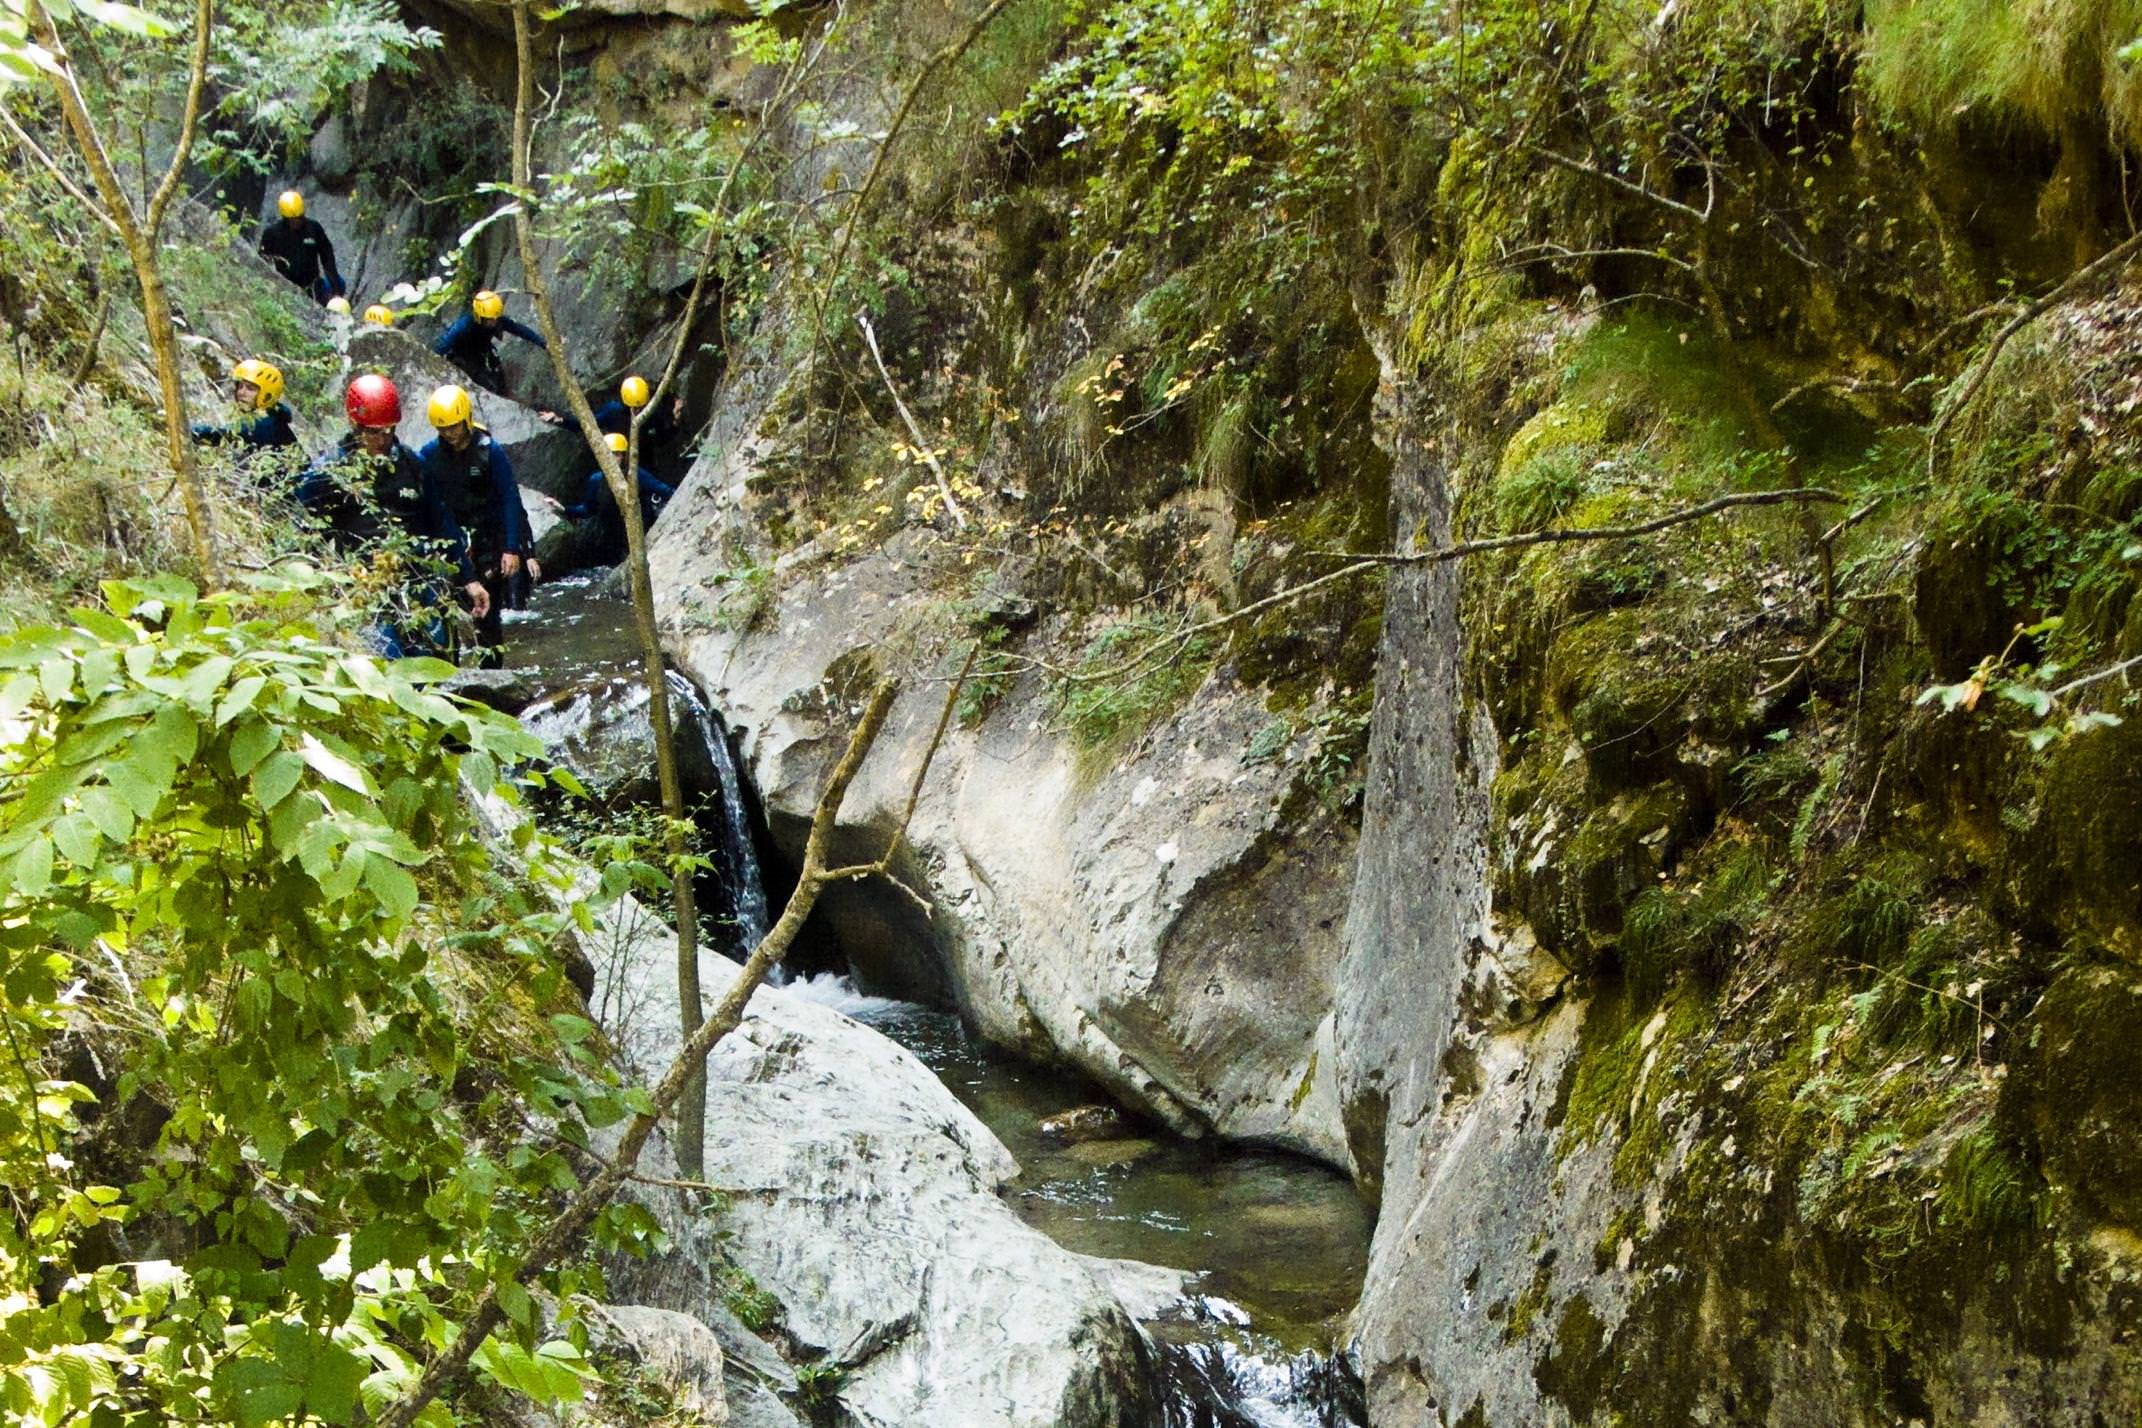 Spain pyrenees aigues tortes canyoning in narrow gorge